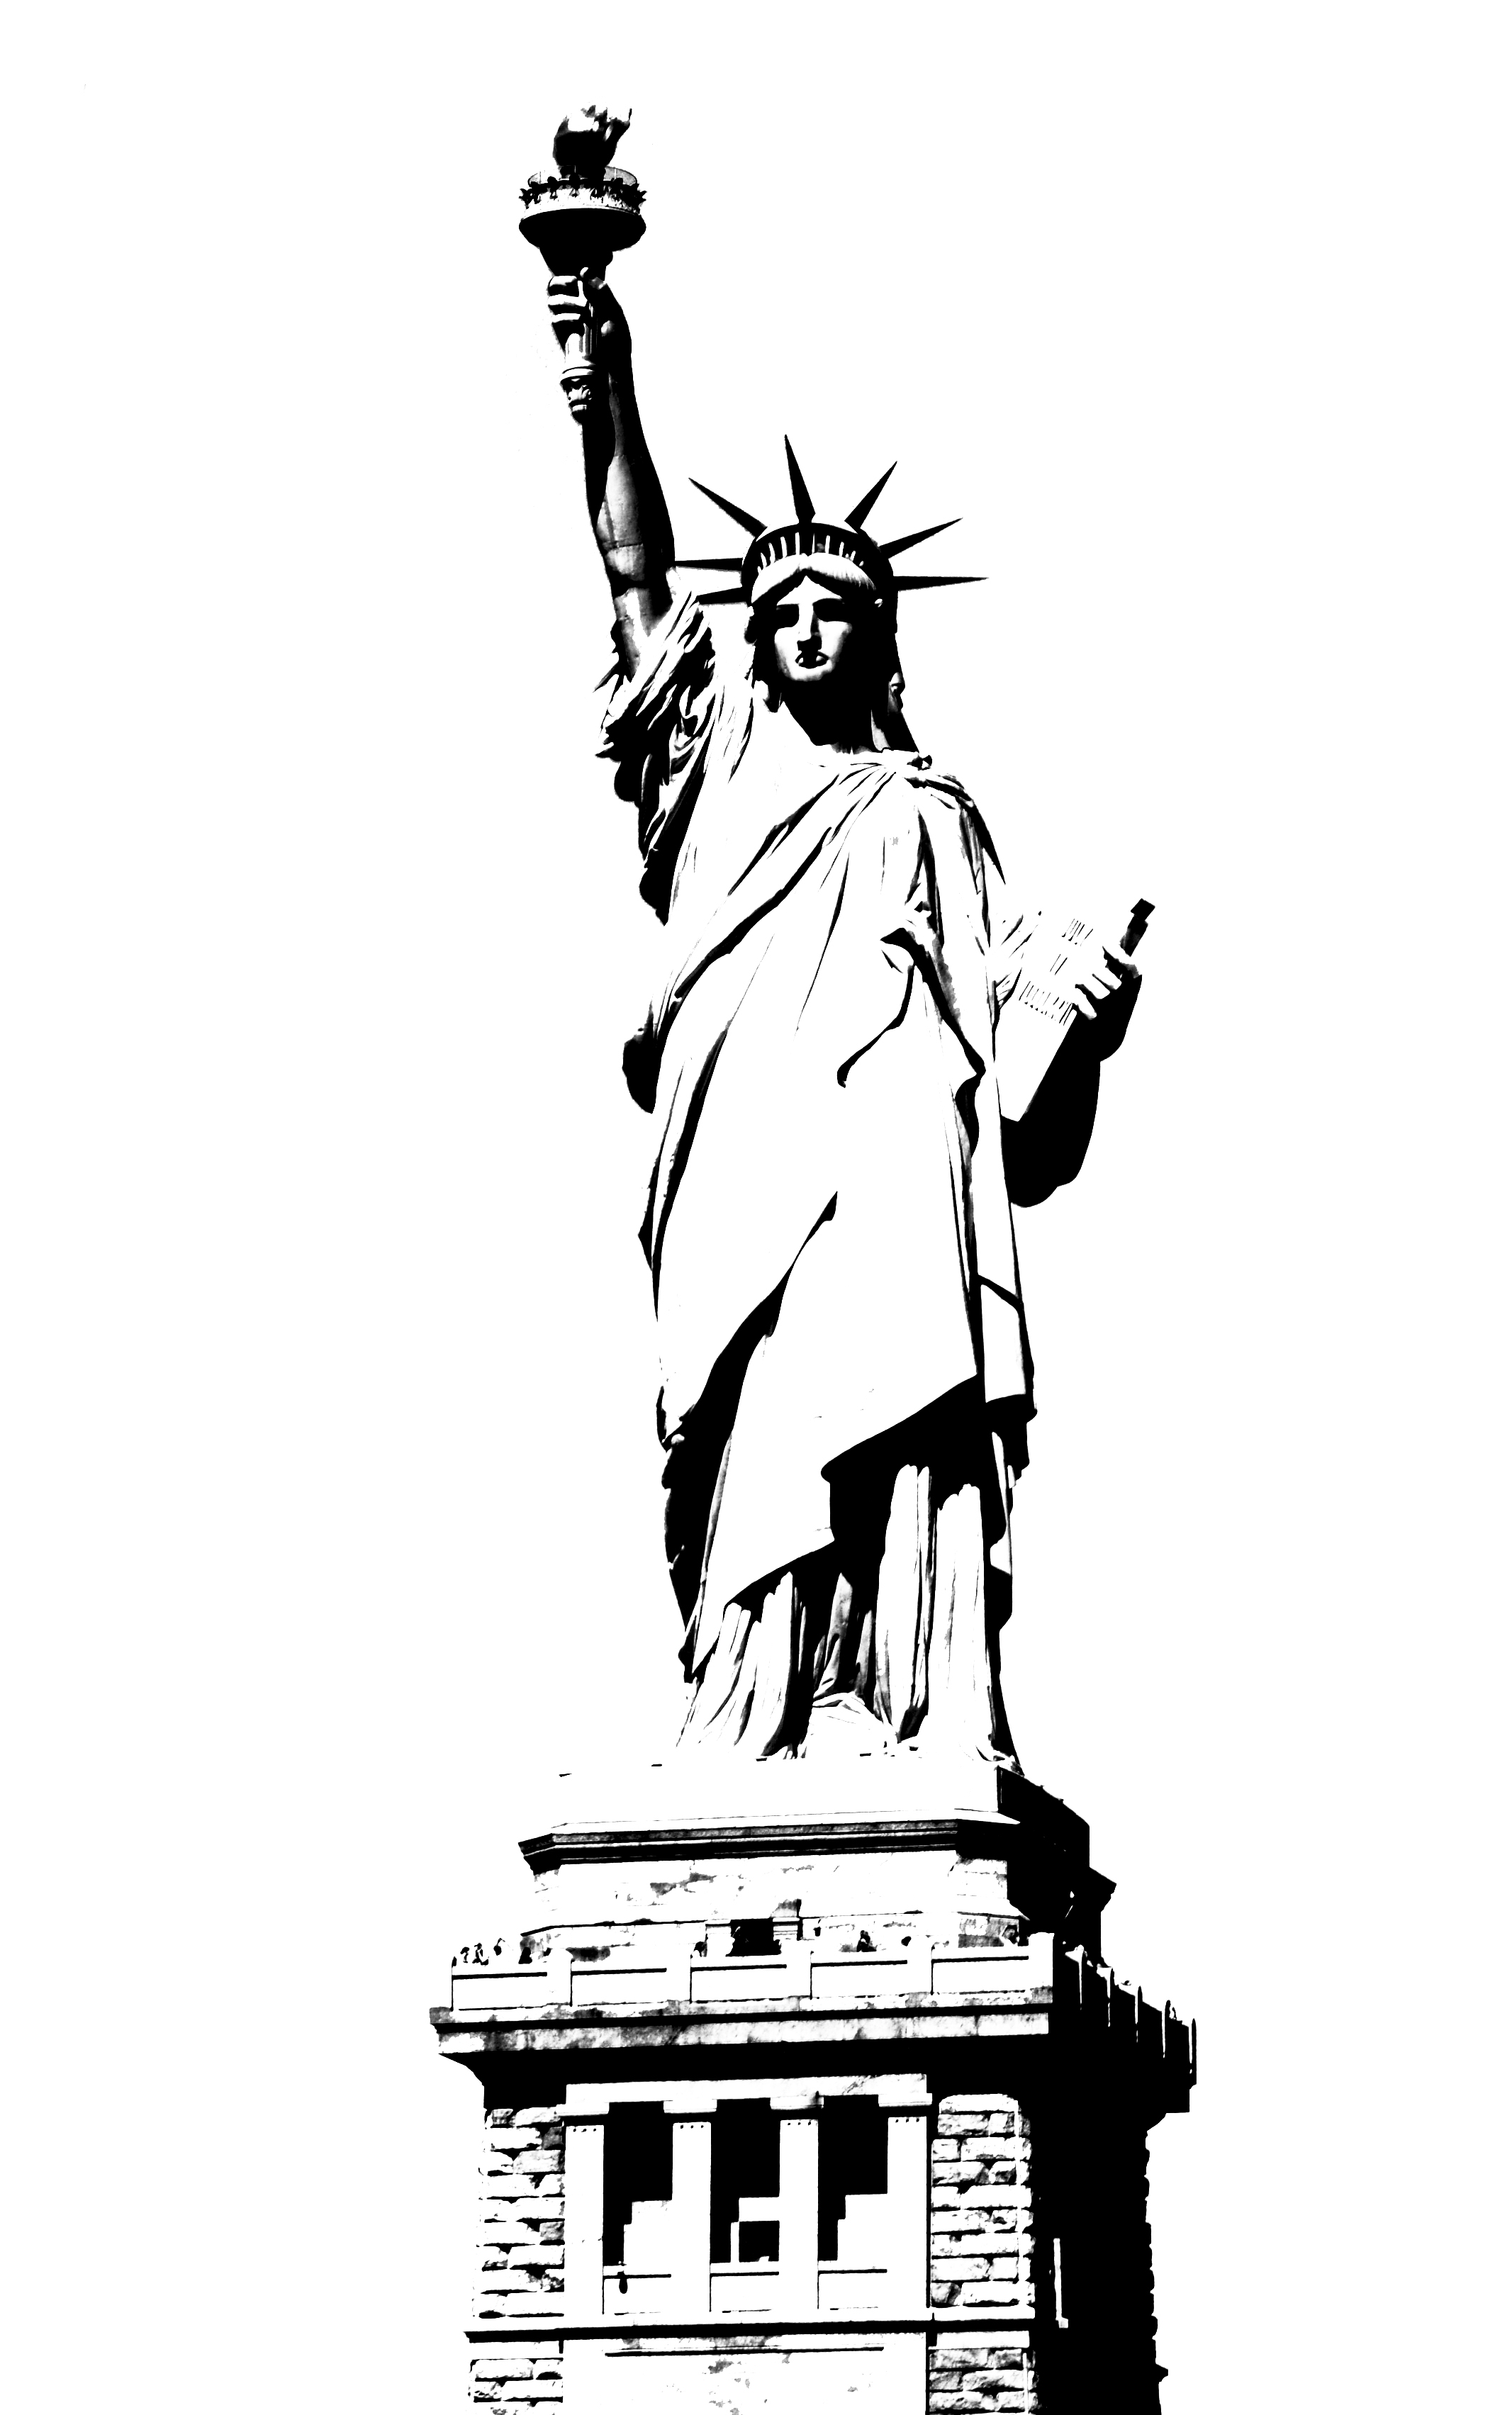 statue of liberty outline the statue of liberty hand drawn vector illustration of liberty statue outline